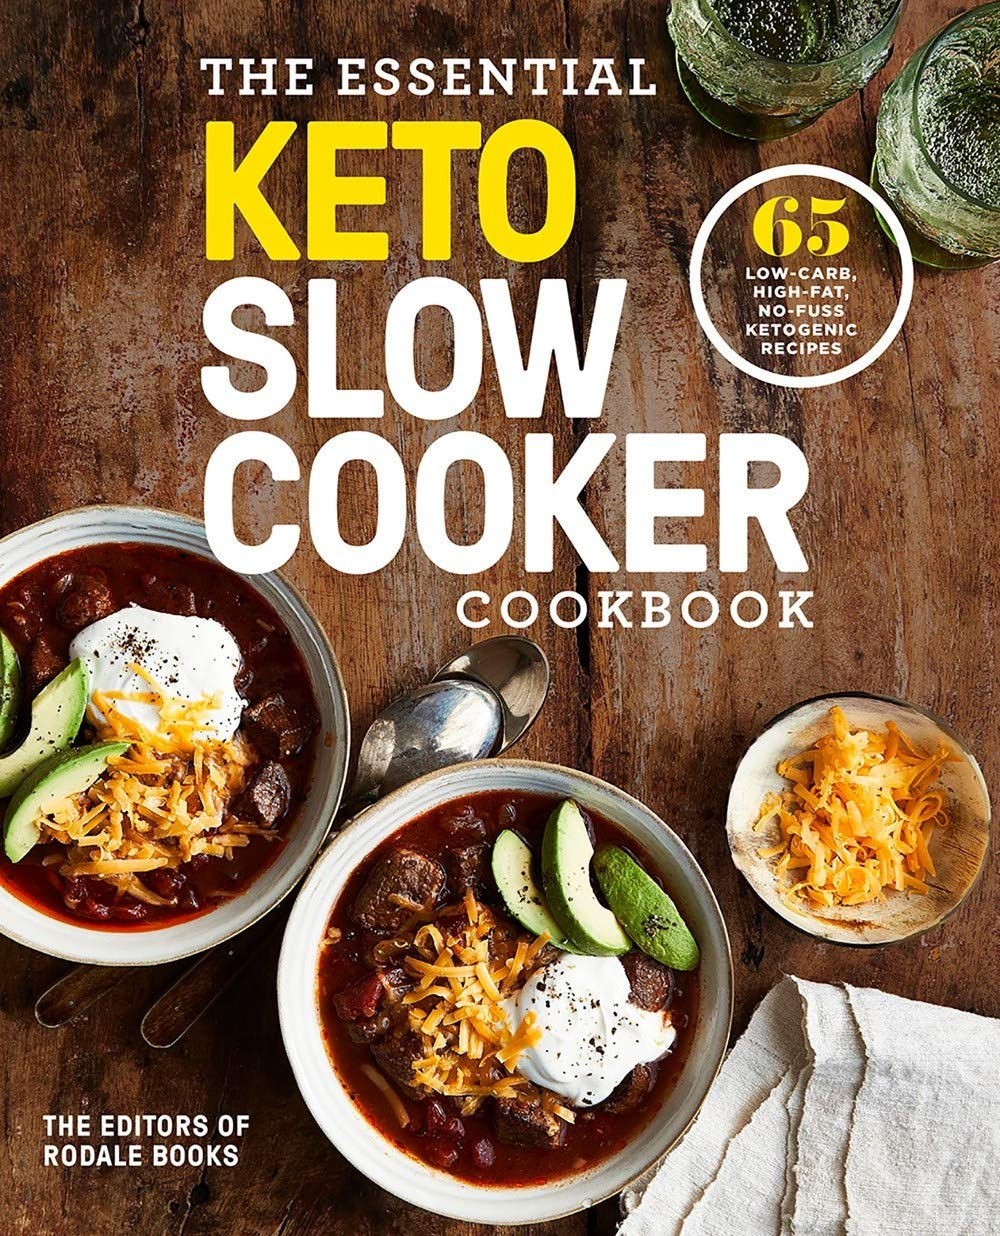 Cheap Keto Slow Cooker  Recipes  Financing No Credit Check